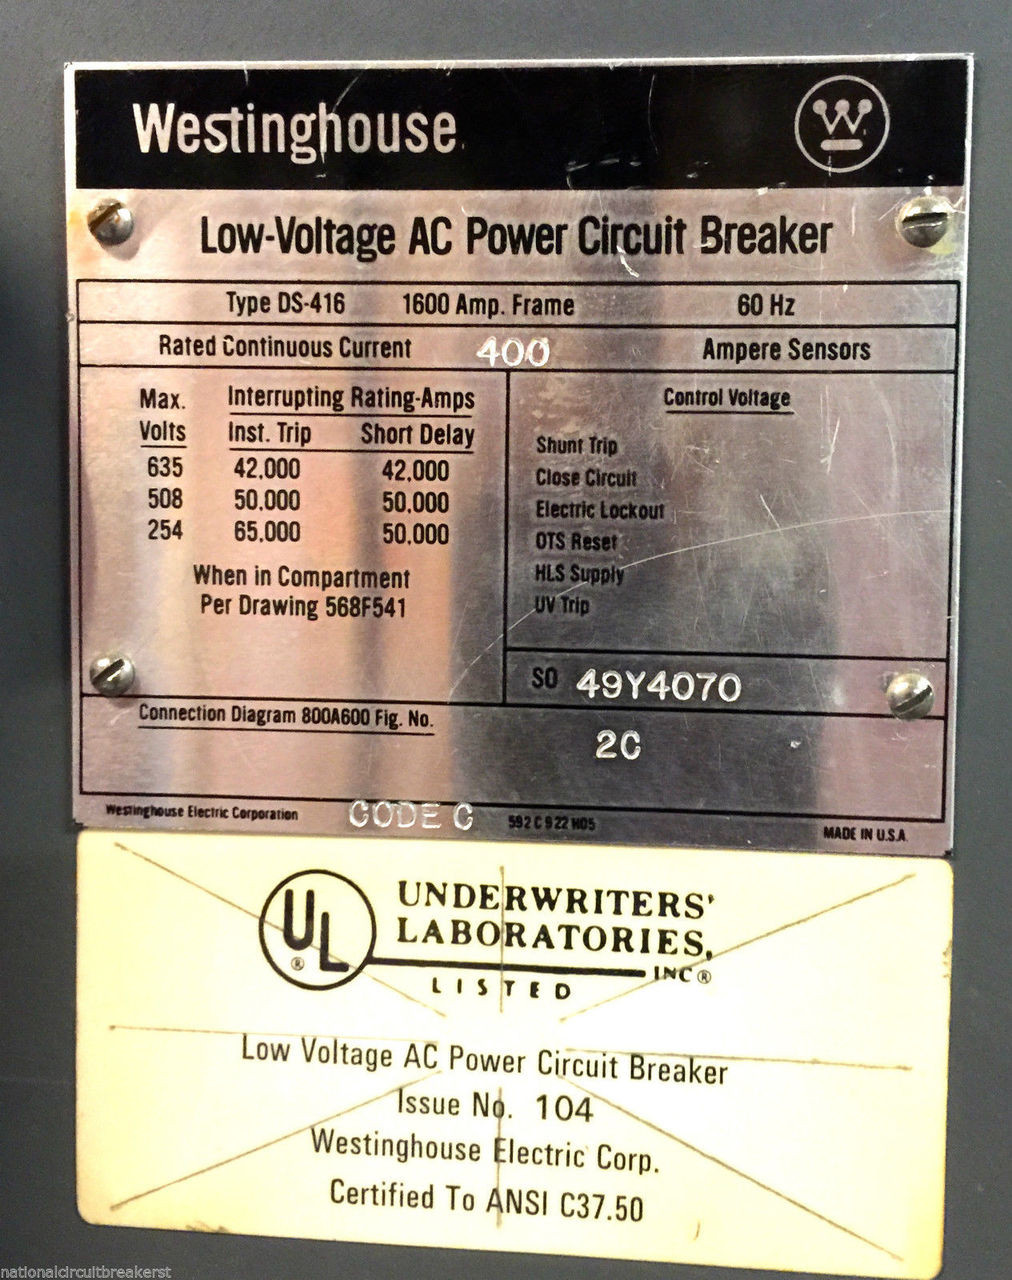 Westinghouse Low Voltage Ac Power Circuit Breaker Type Ds 416 Control For The S Price 600000 Image 1